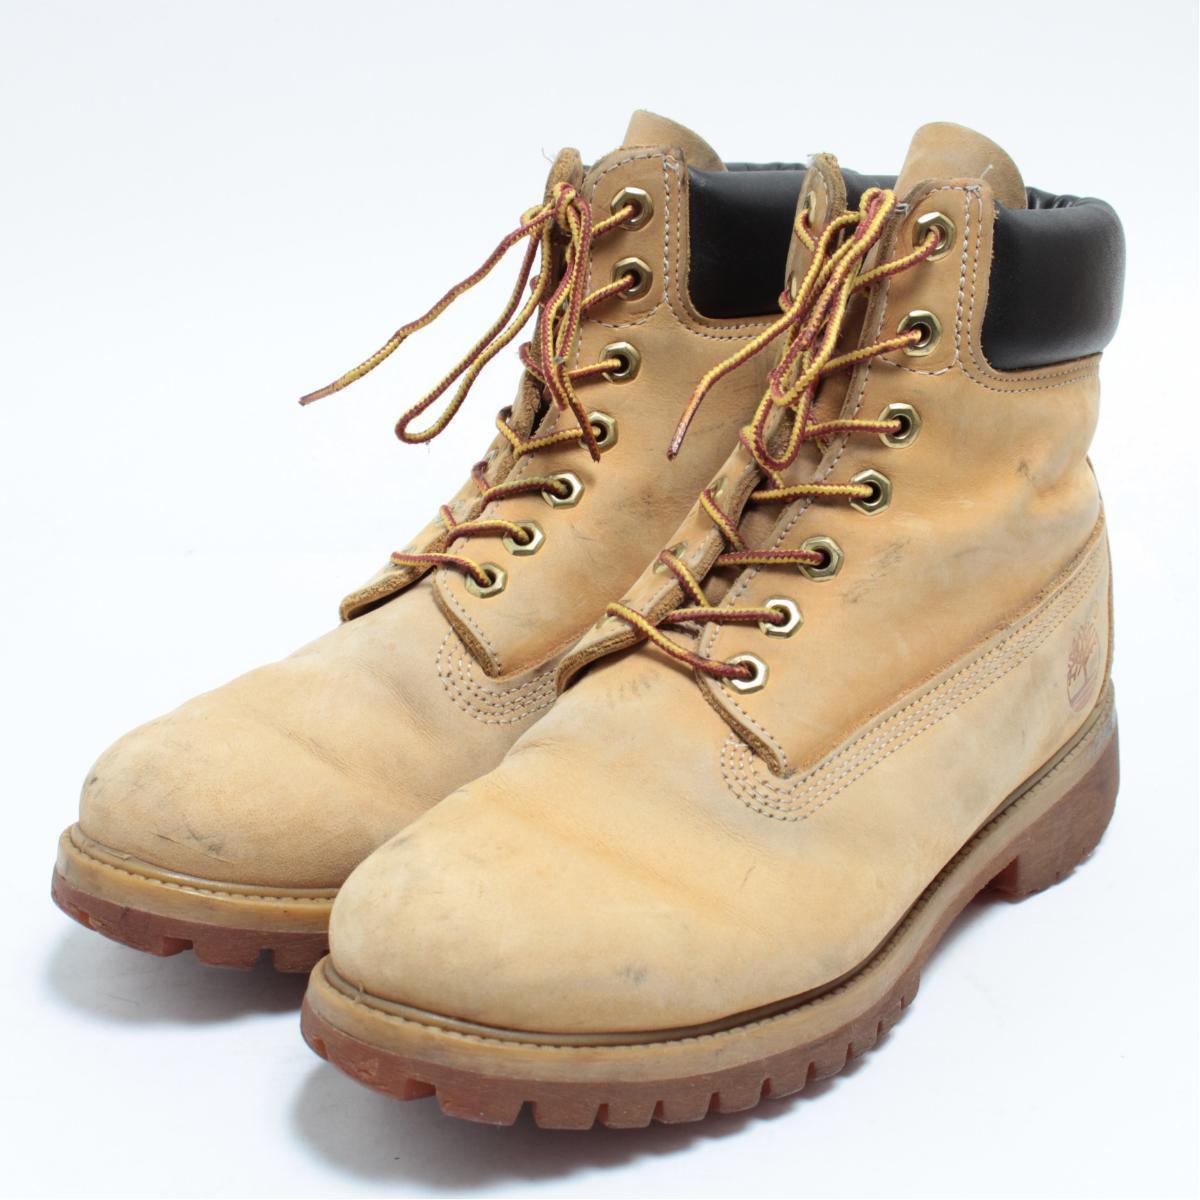 7deda56c841fe 75M men 25.5cm /boj8878 made in Timberland Timberland 6 inches premium  outdoor boots USA